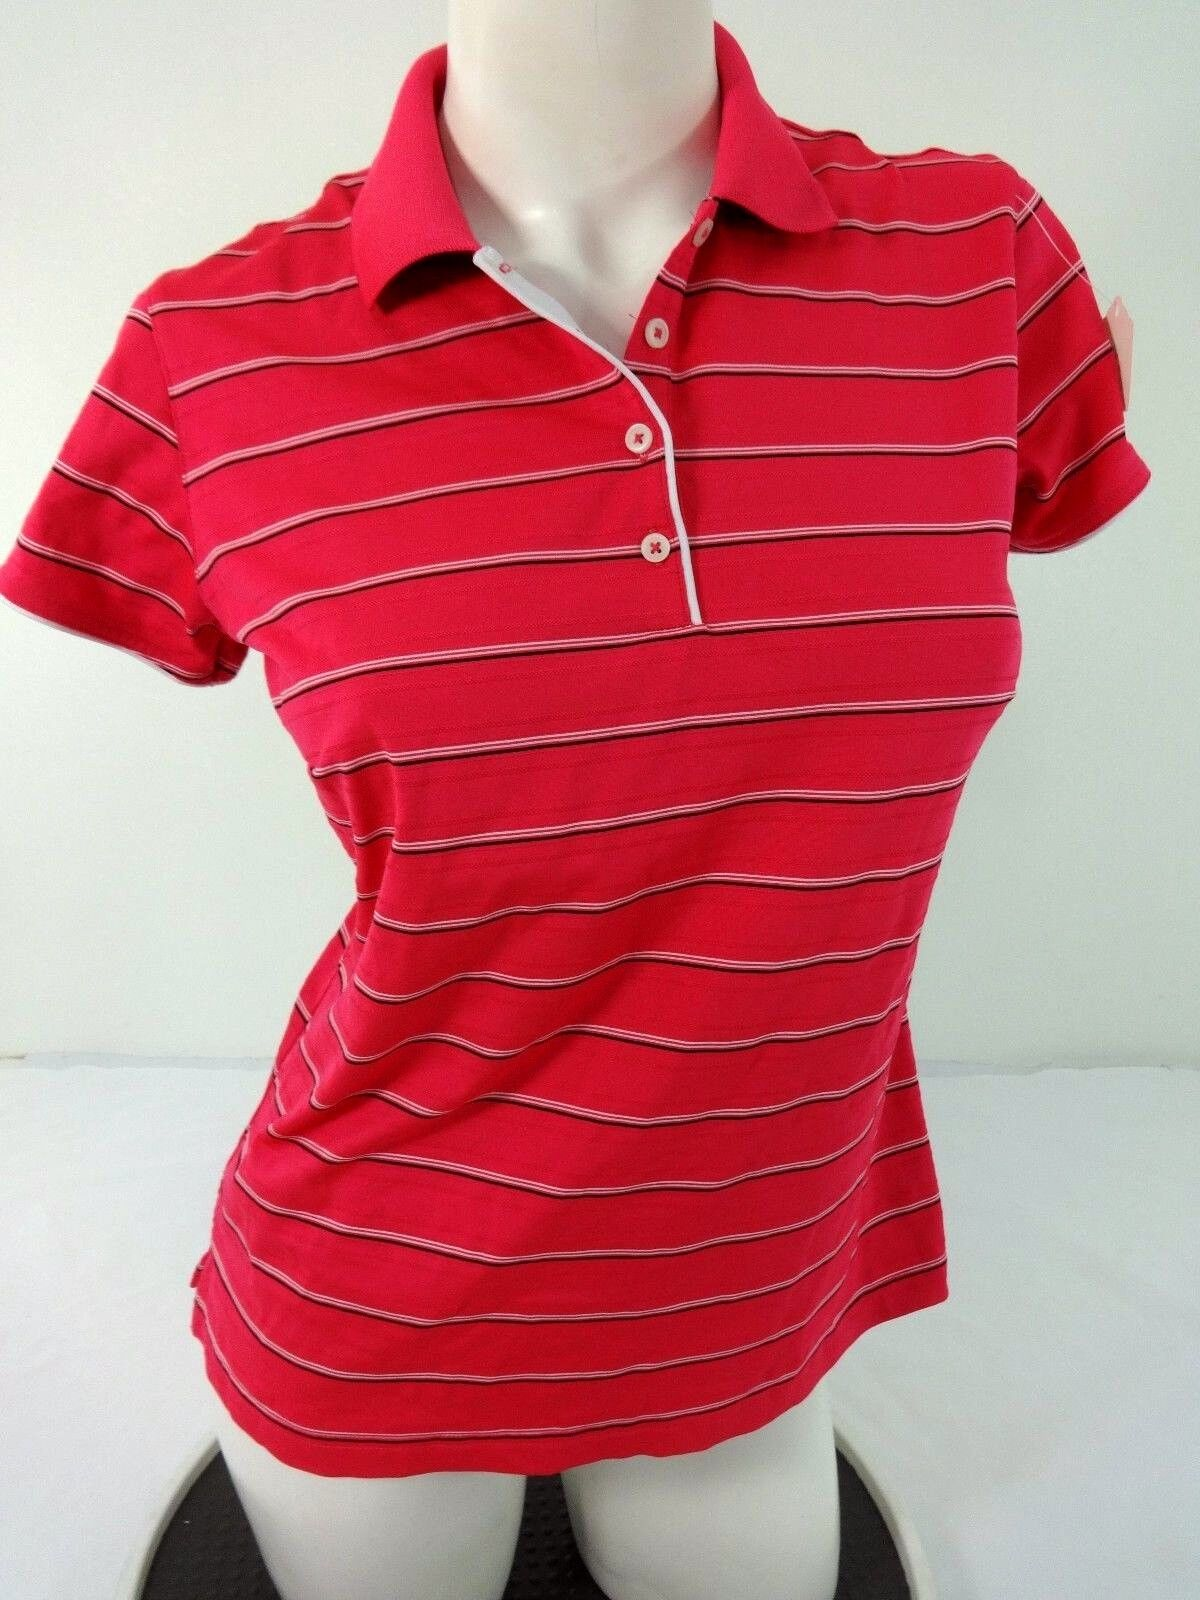 Adidas Womens Pink Climalite Poly Spandex Polo Shirt Size M Ebay